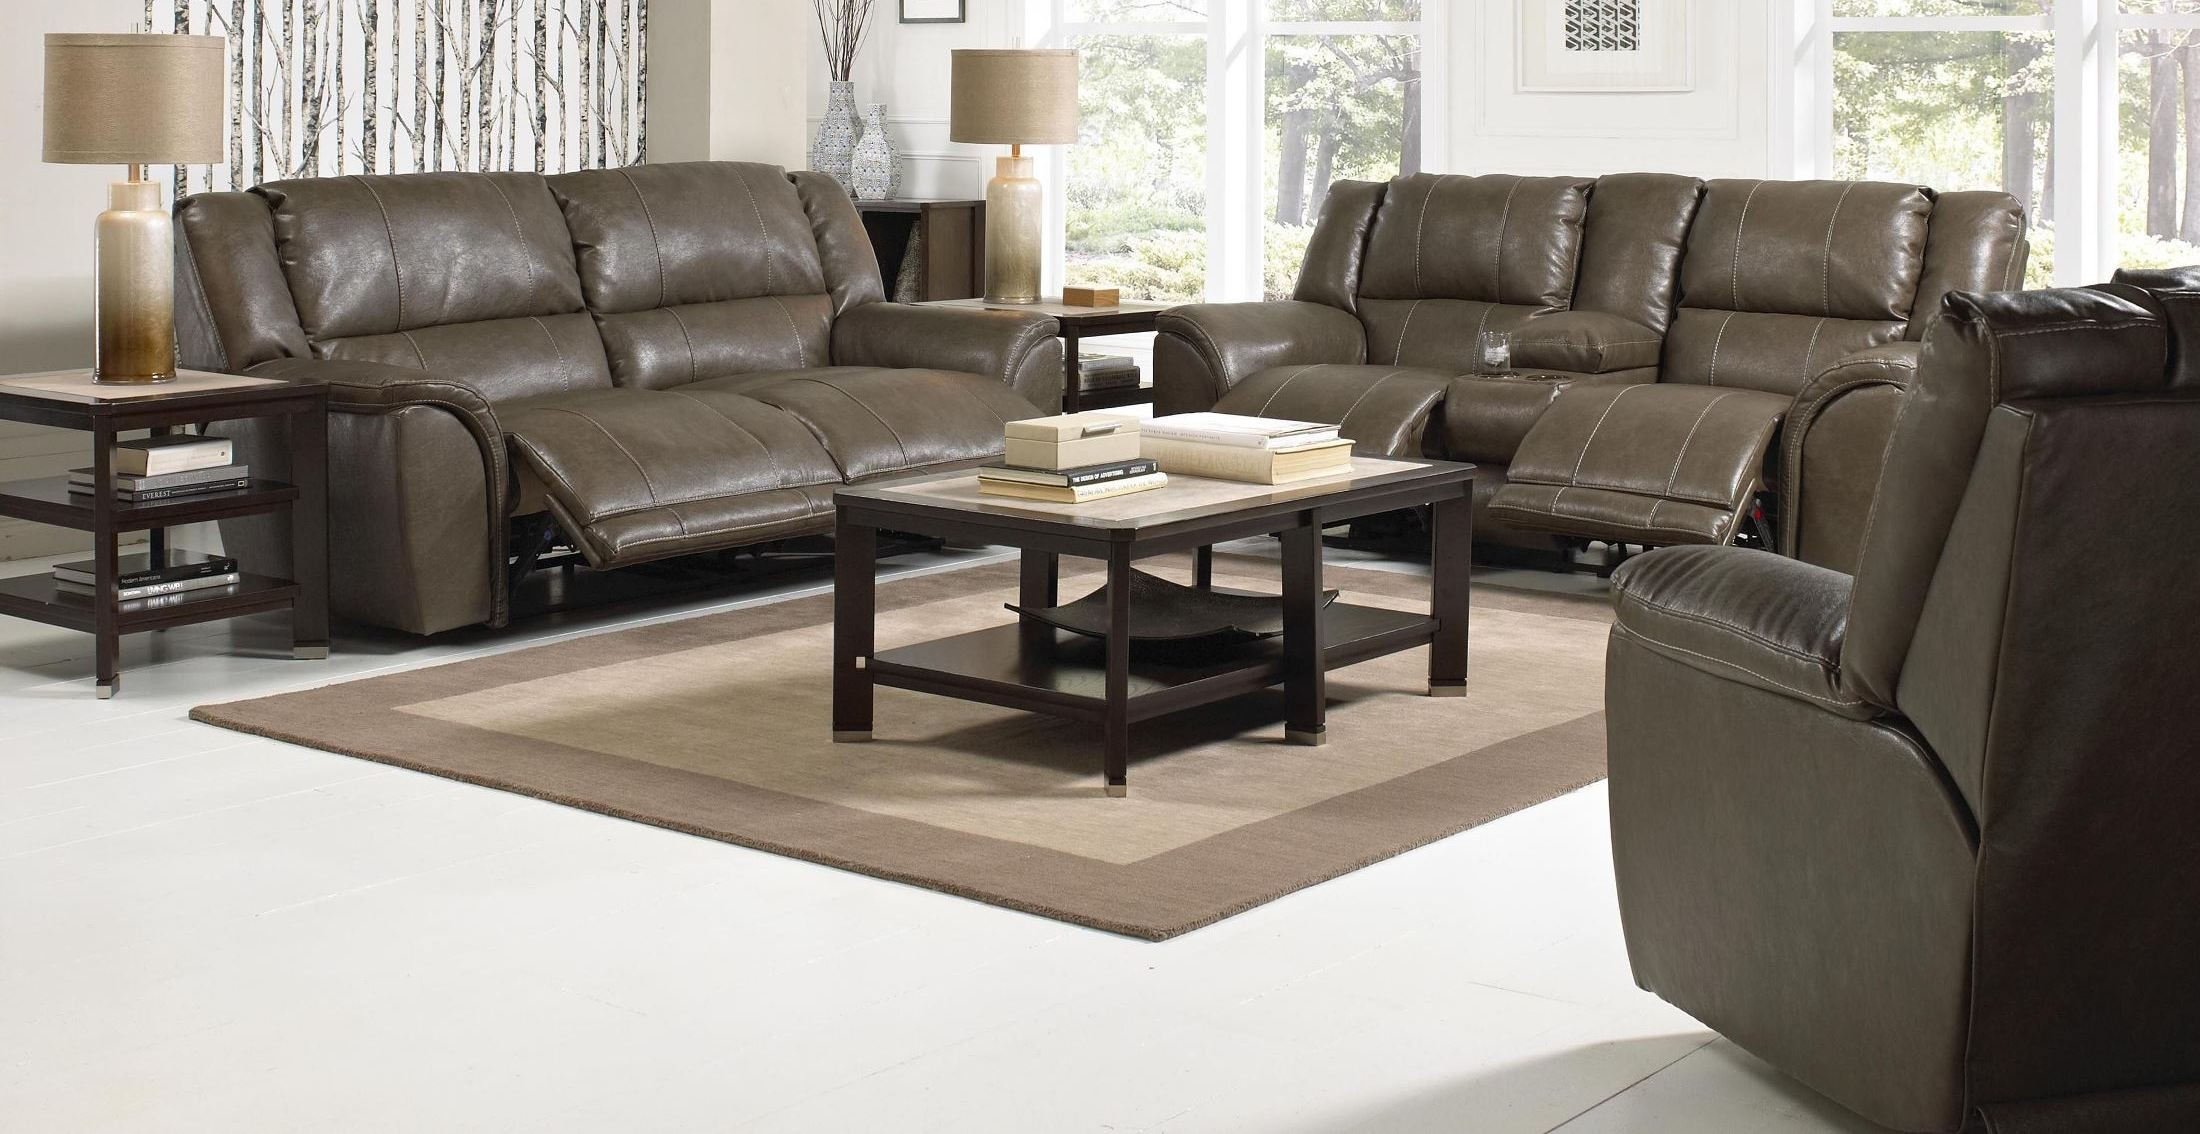 Carmine Smoke Reclining Living Room Set From Catnapper 4151120000000000 C